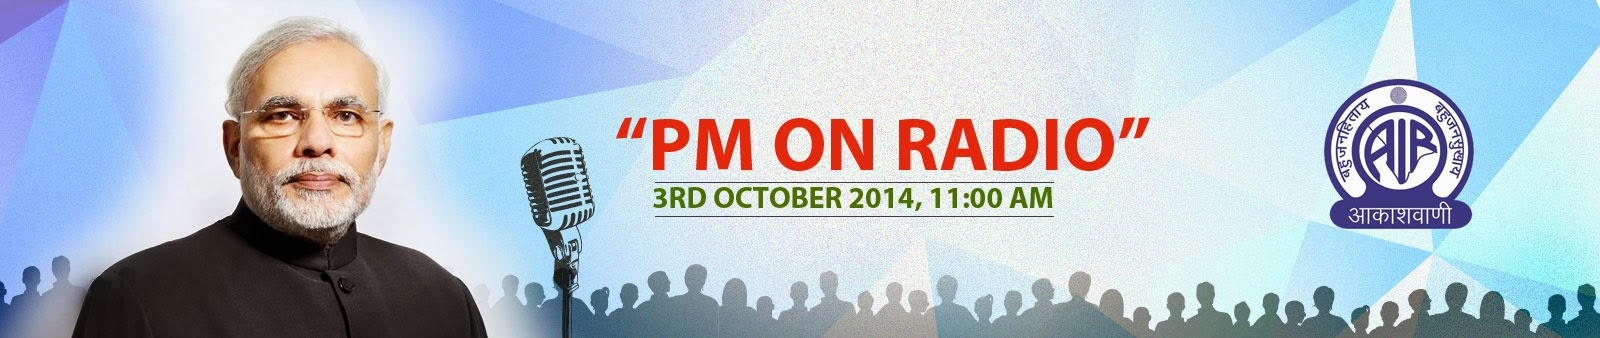 PM on Radio